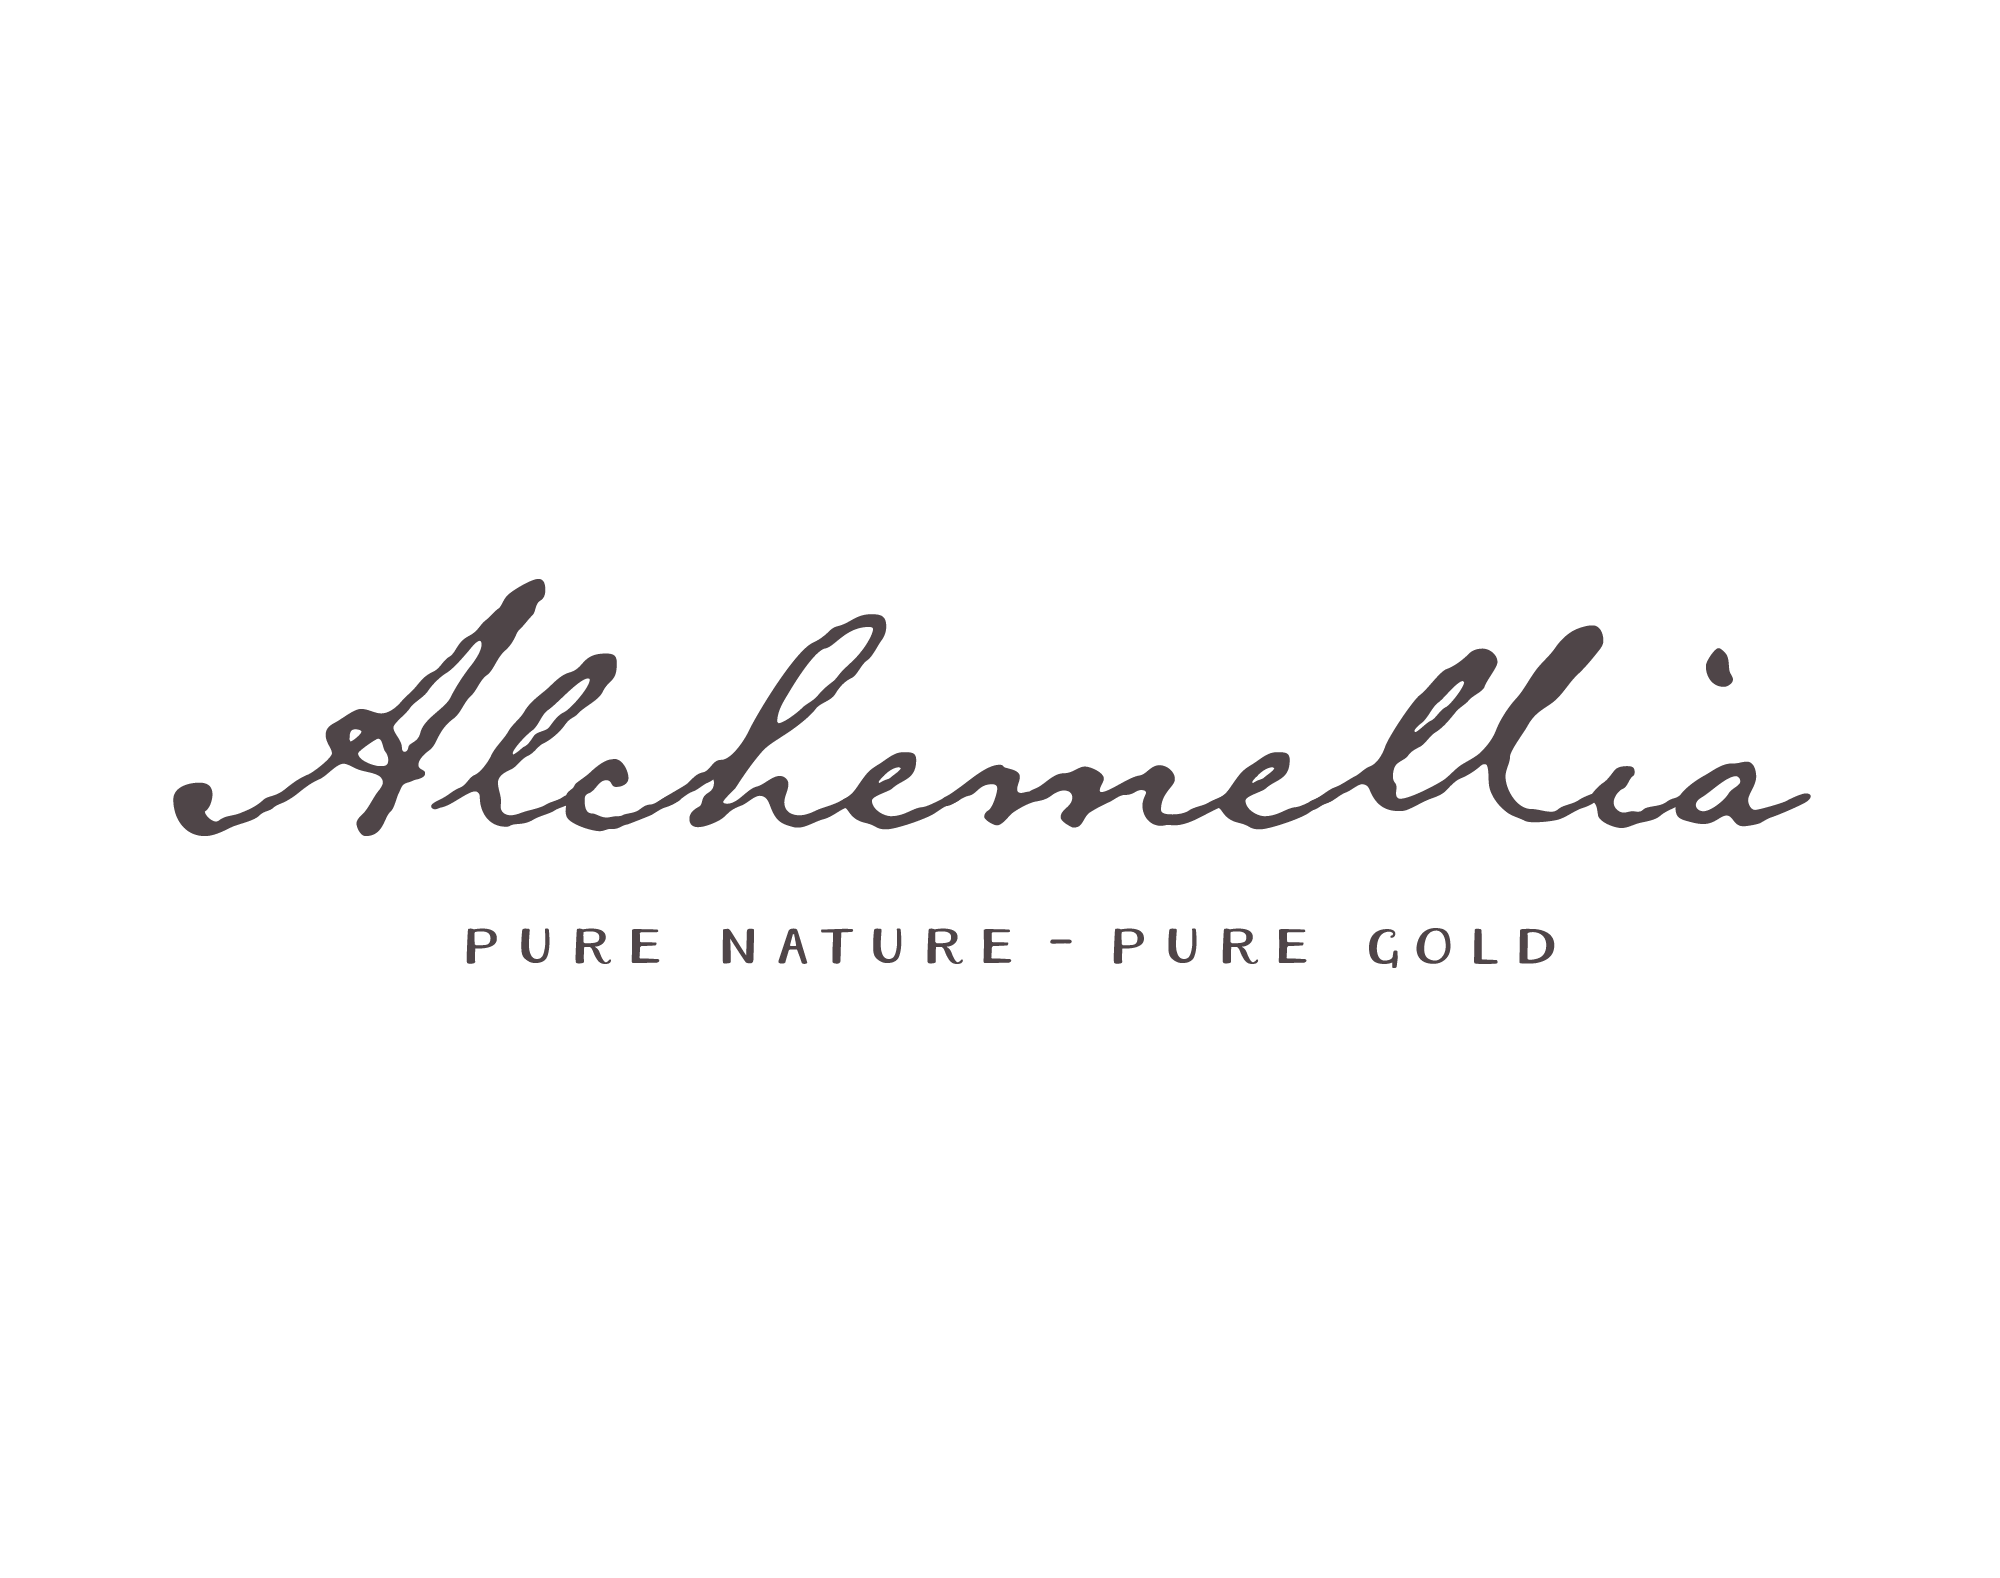 Alchemellia - Pure nature - pure gold